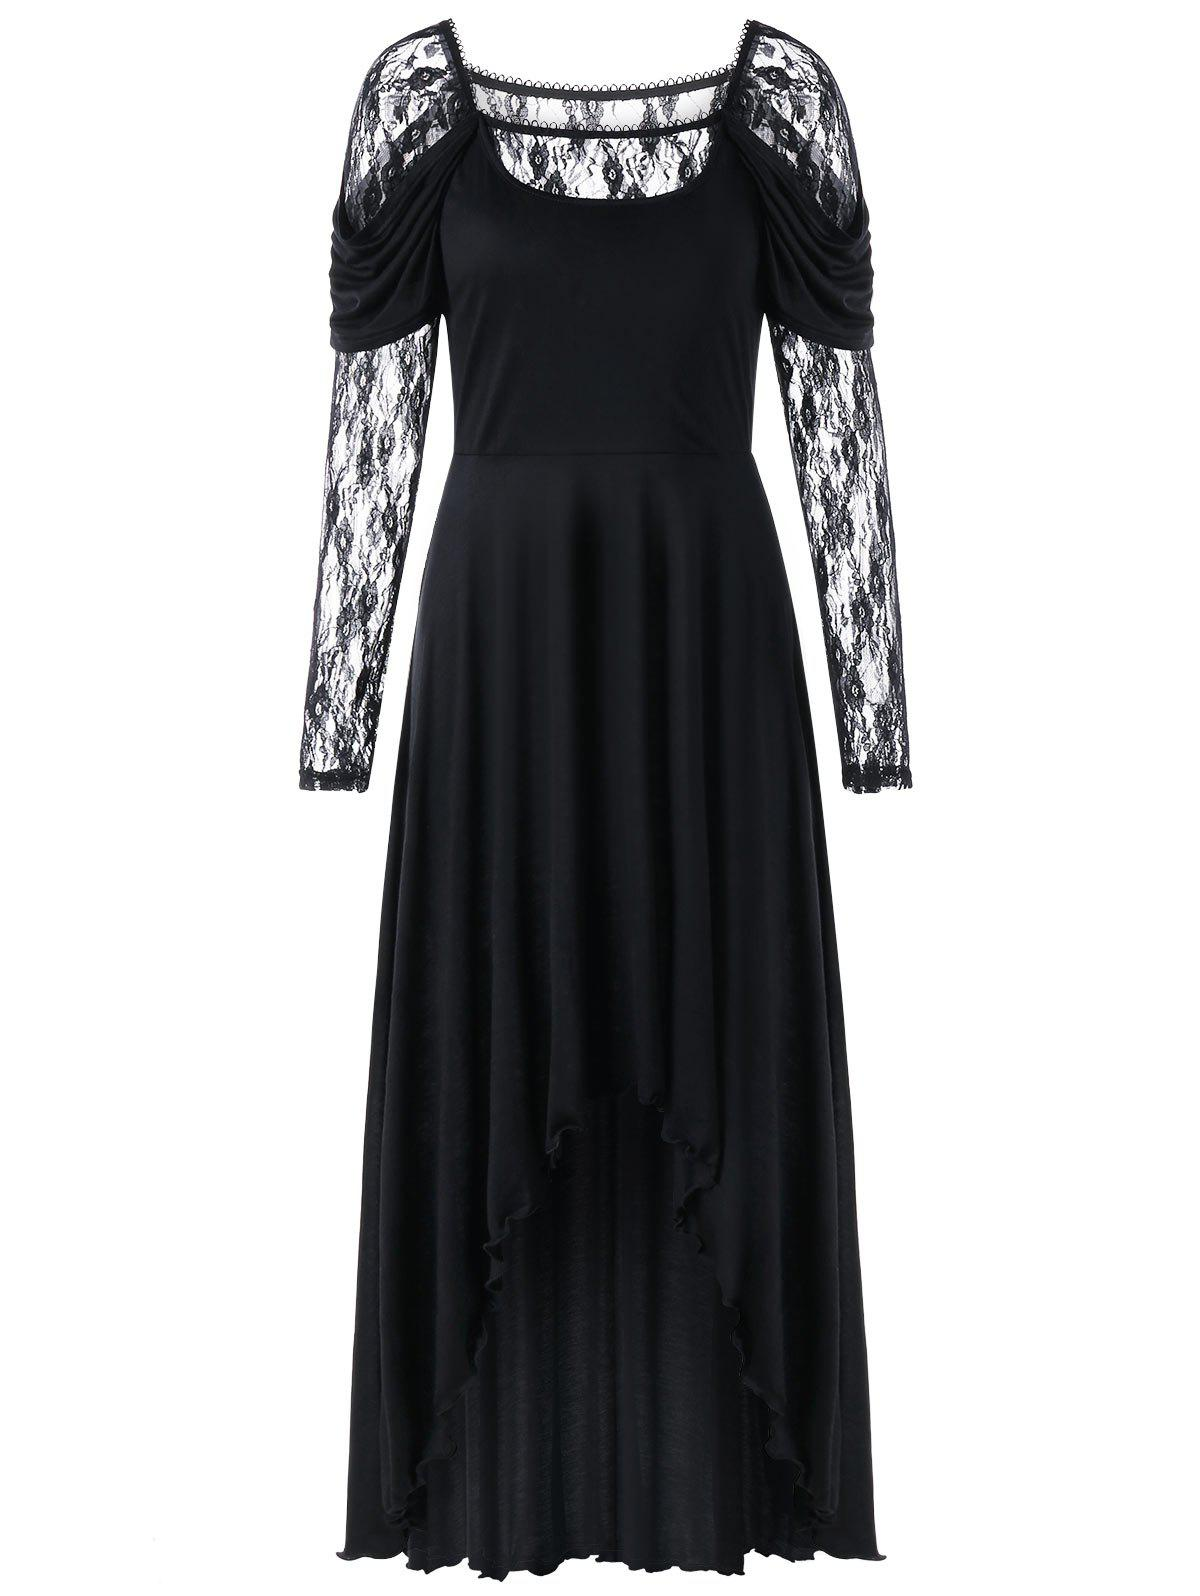 New Lace Panel Maxi High Low Dress